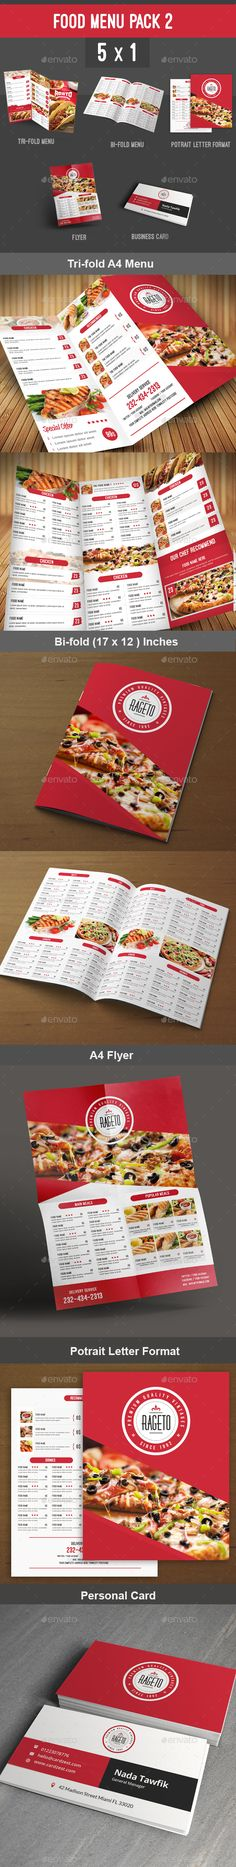 Food Menu Pack 2 — Photoshop PSD #flyer #fast food • Available here → https://graphicriver.net/item/food-menu-pack-2/13819151?ref=pxcr